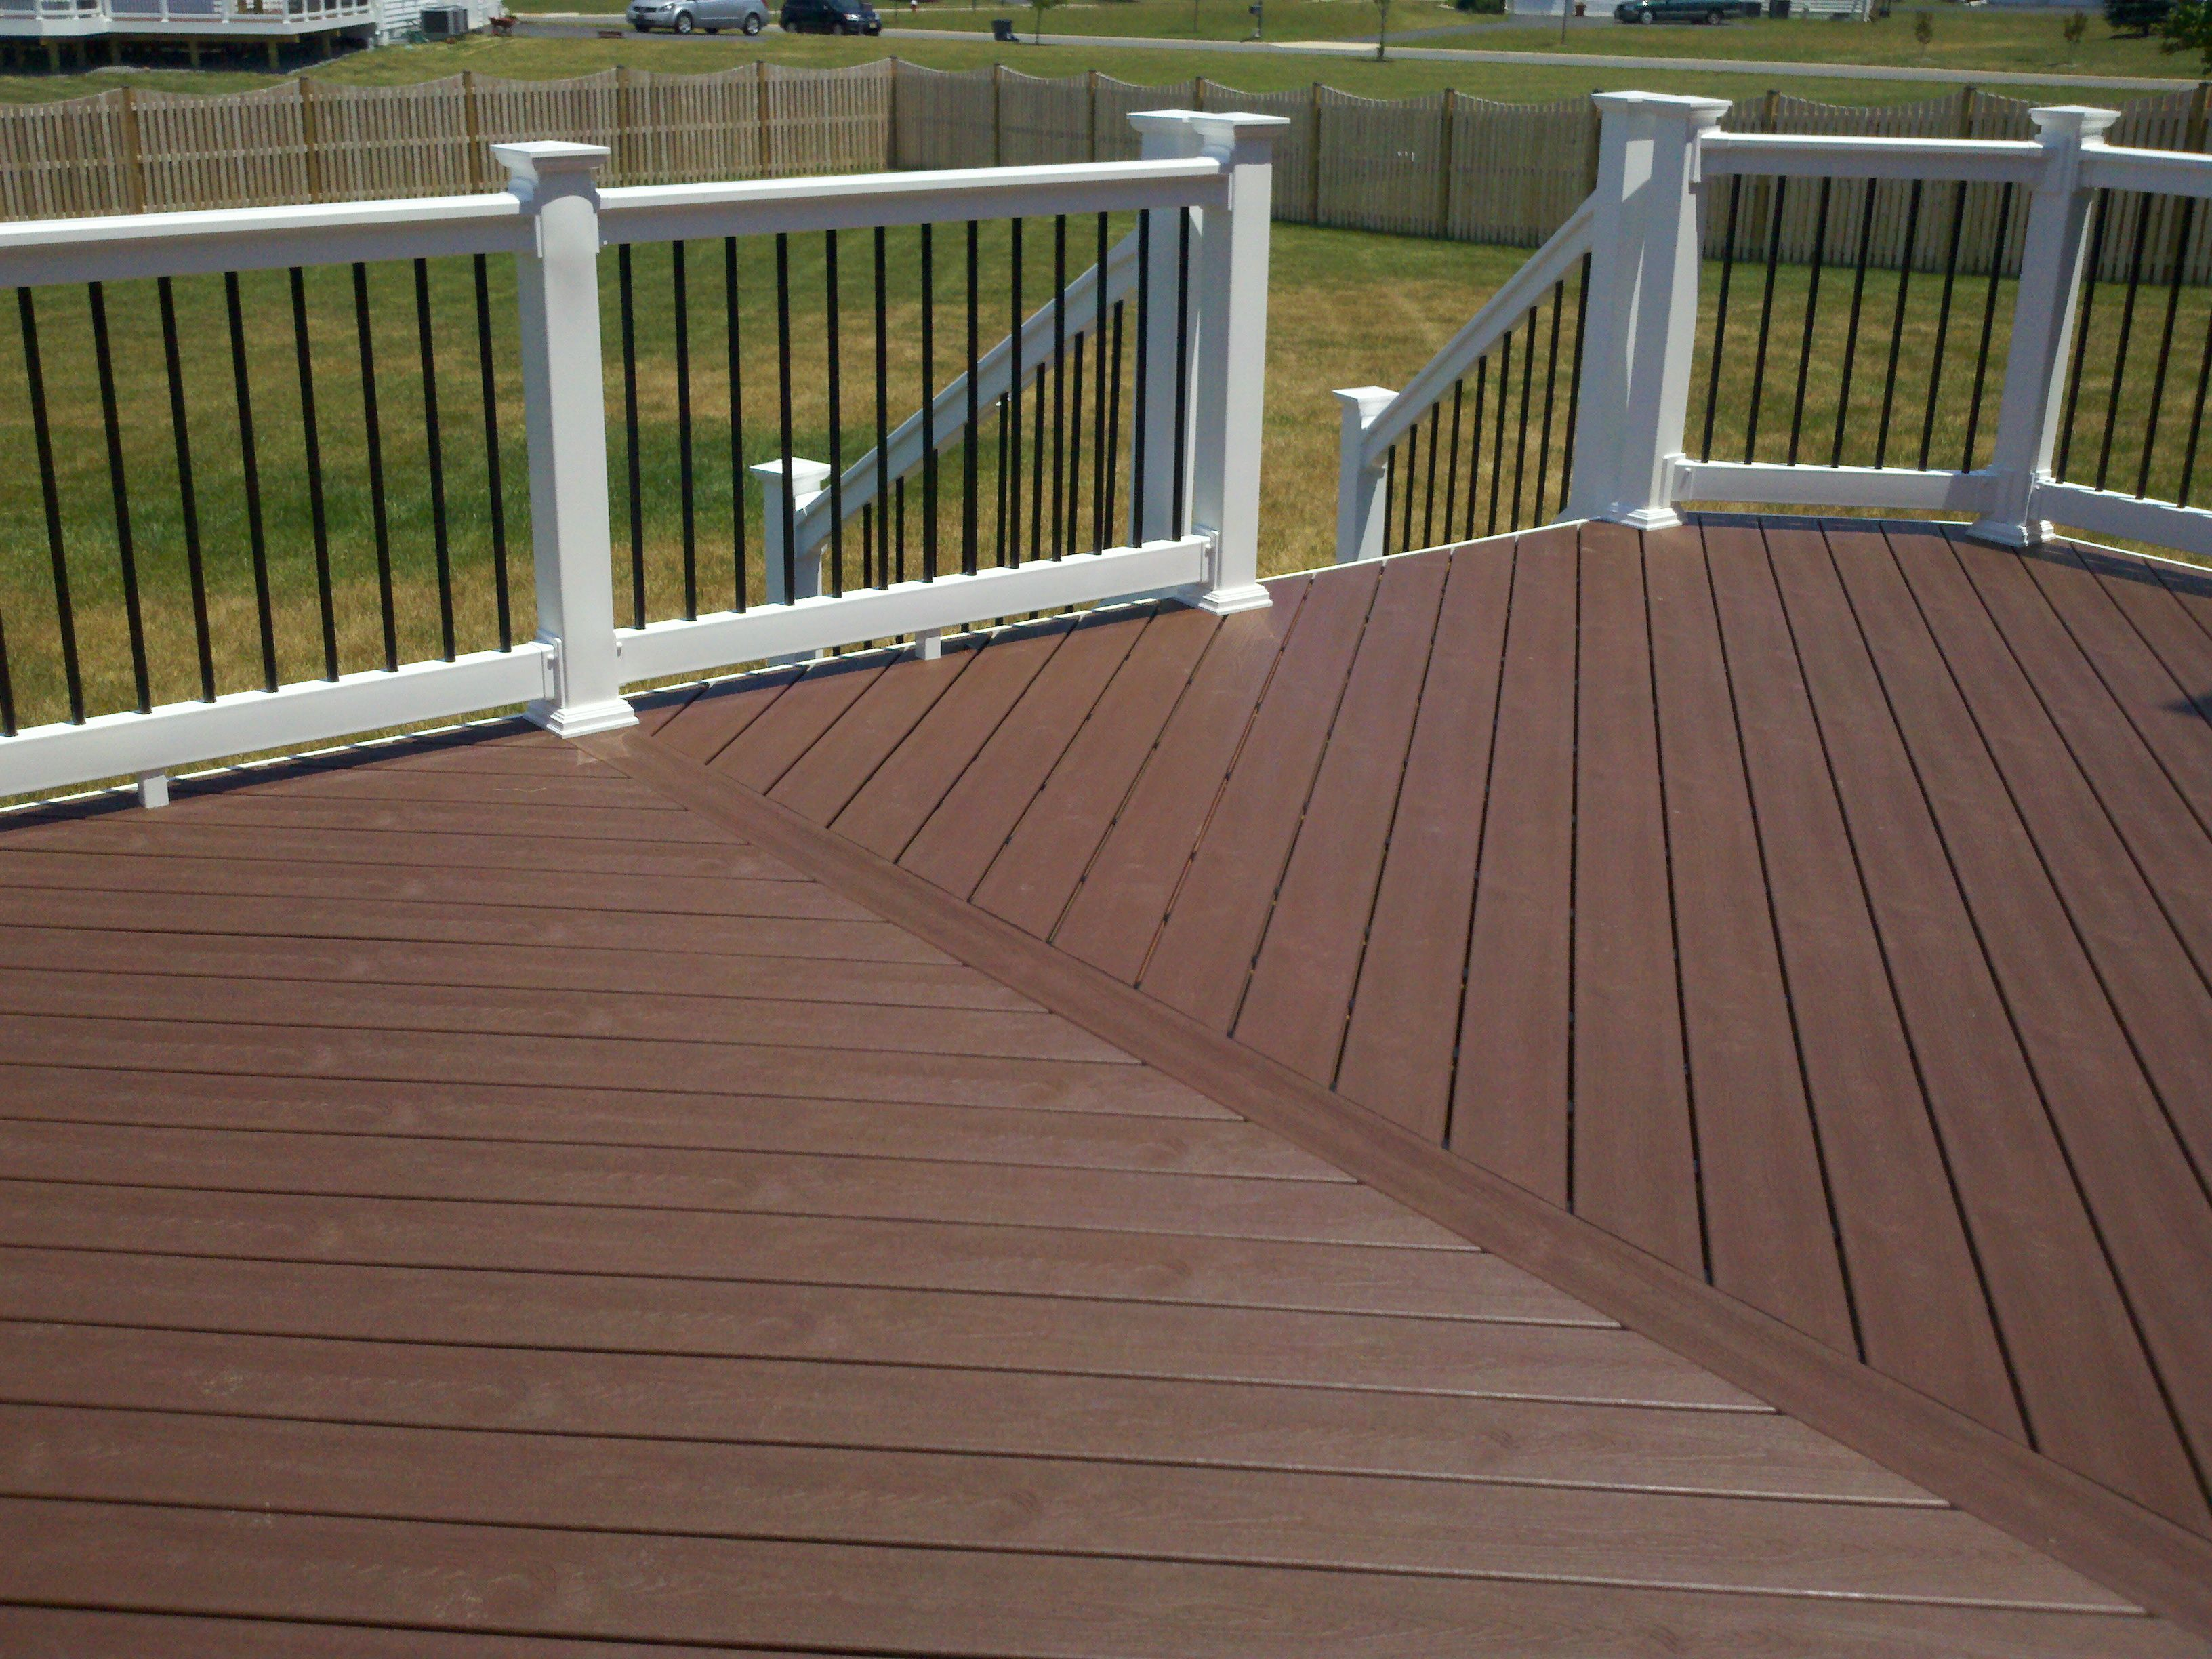 Trex composite decking vinyl rail system black aluminum for Composite deck railing